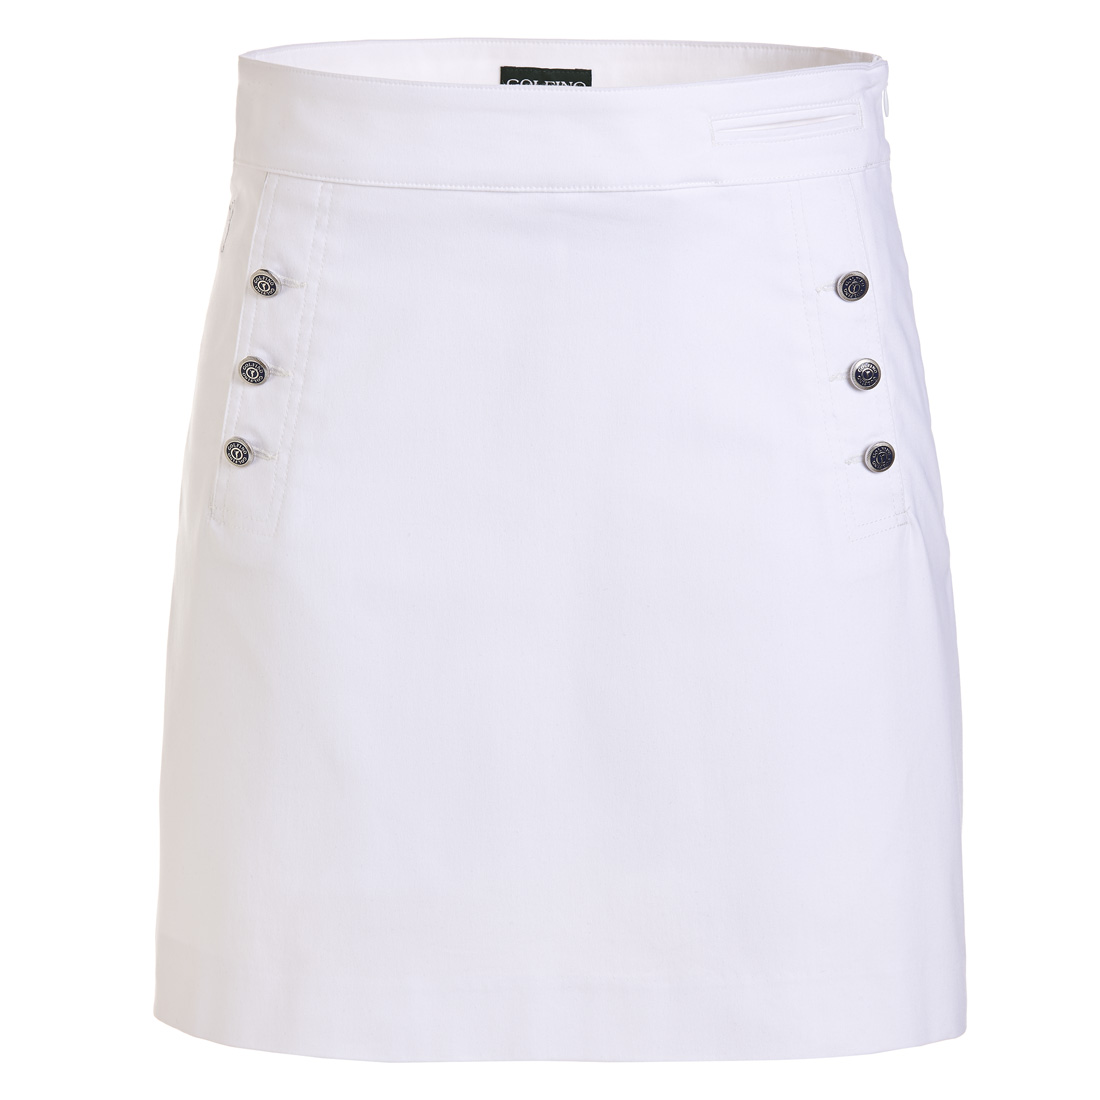 Damen Funktions-Golfskort mit Techno Stretch und UV-Protection